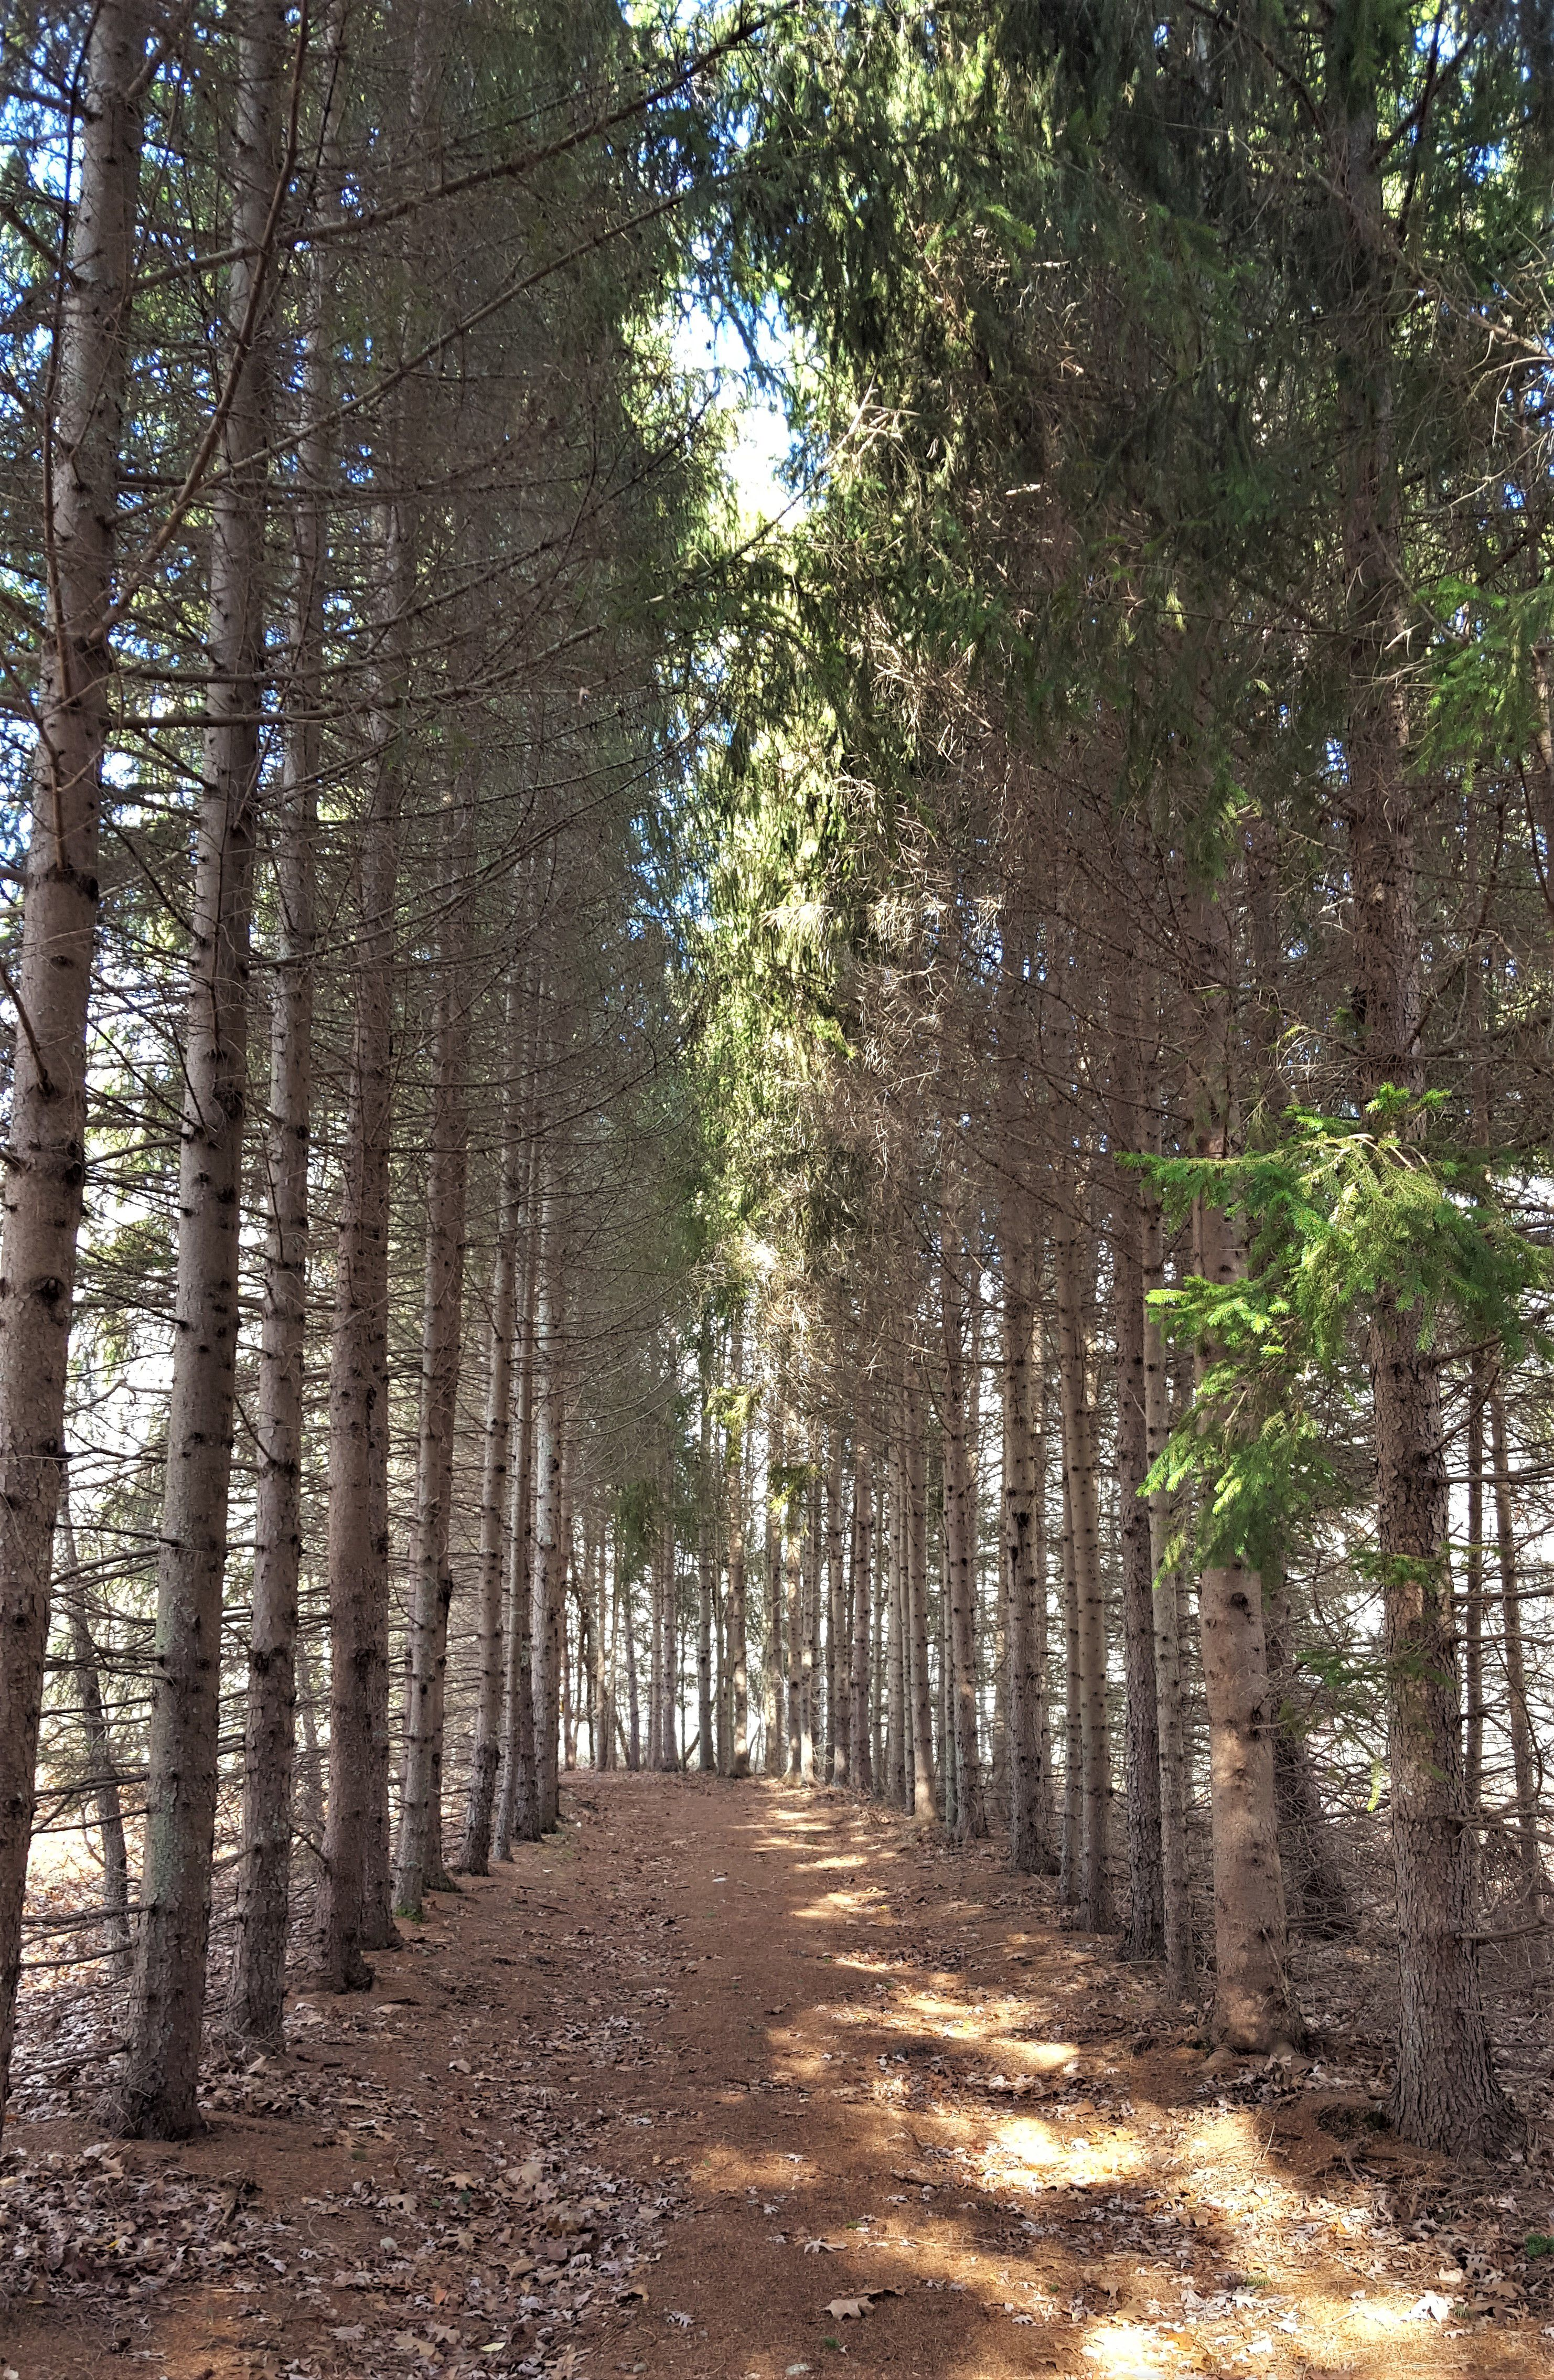 Looking through a double row of tall spruce trees, lining a narrow dirt lane.